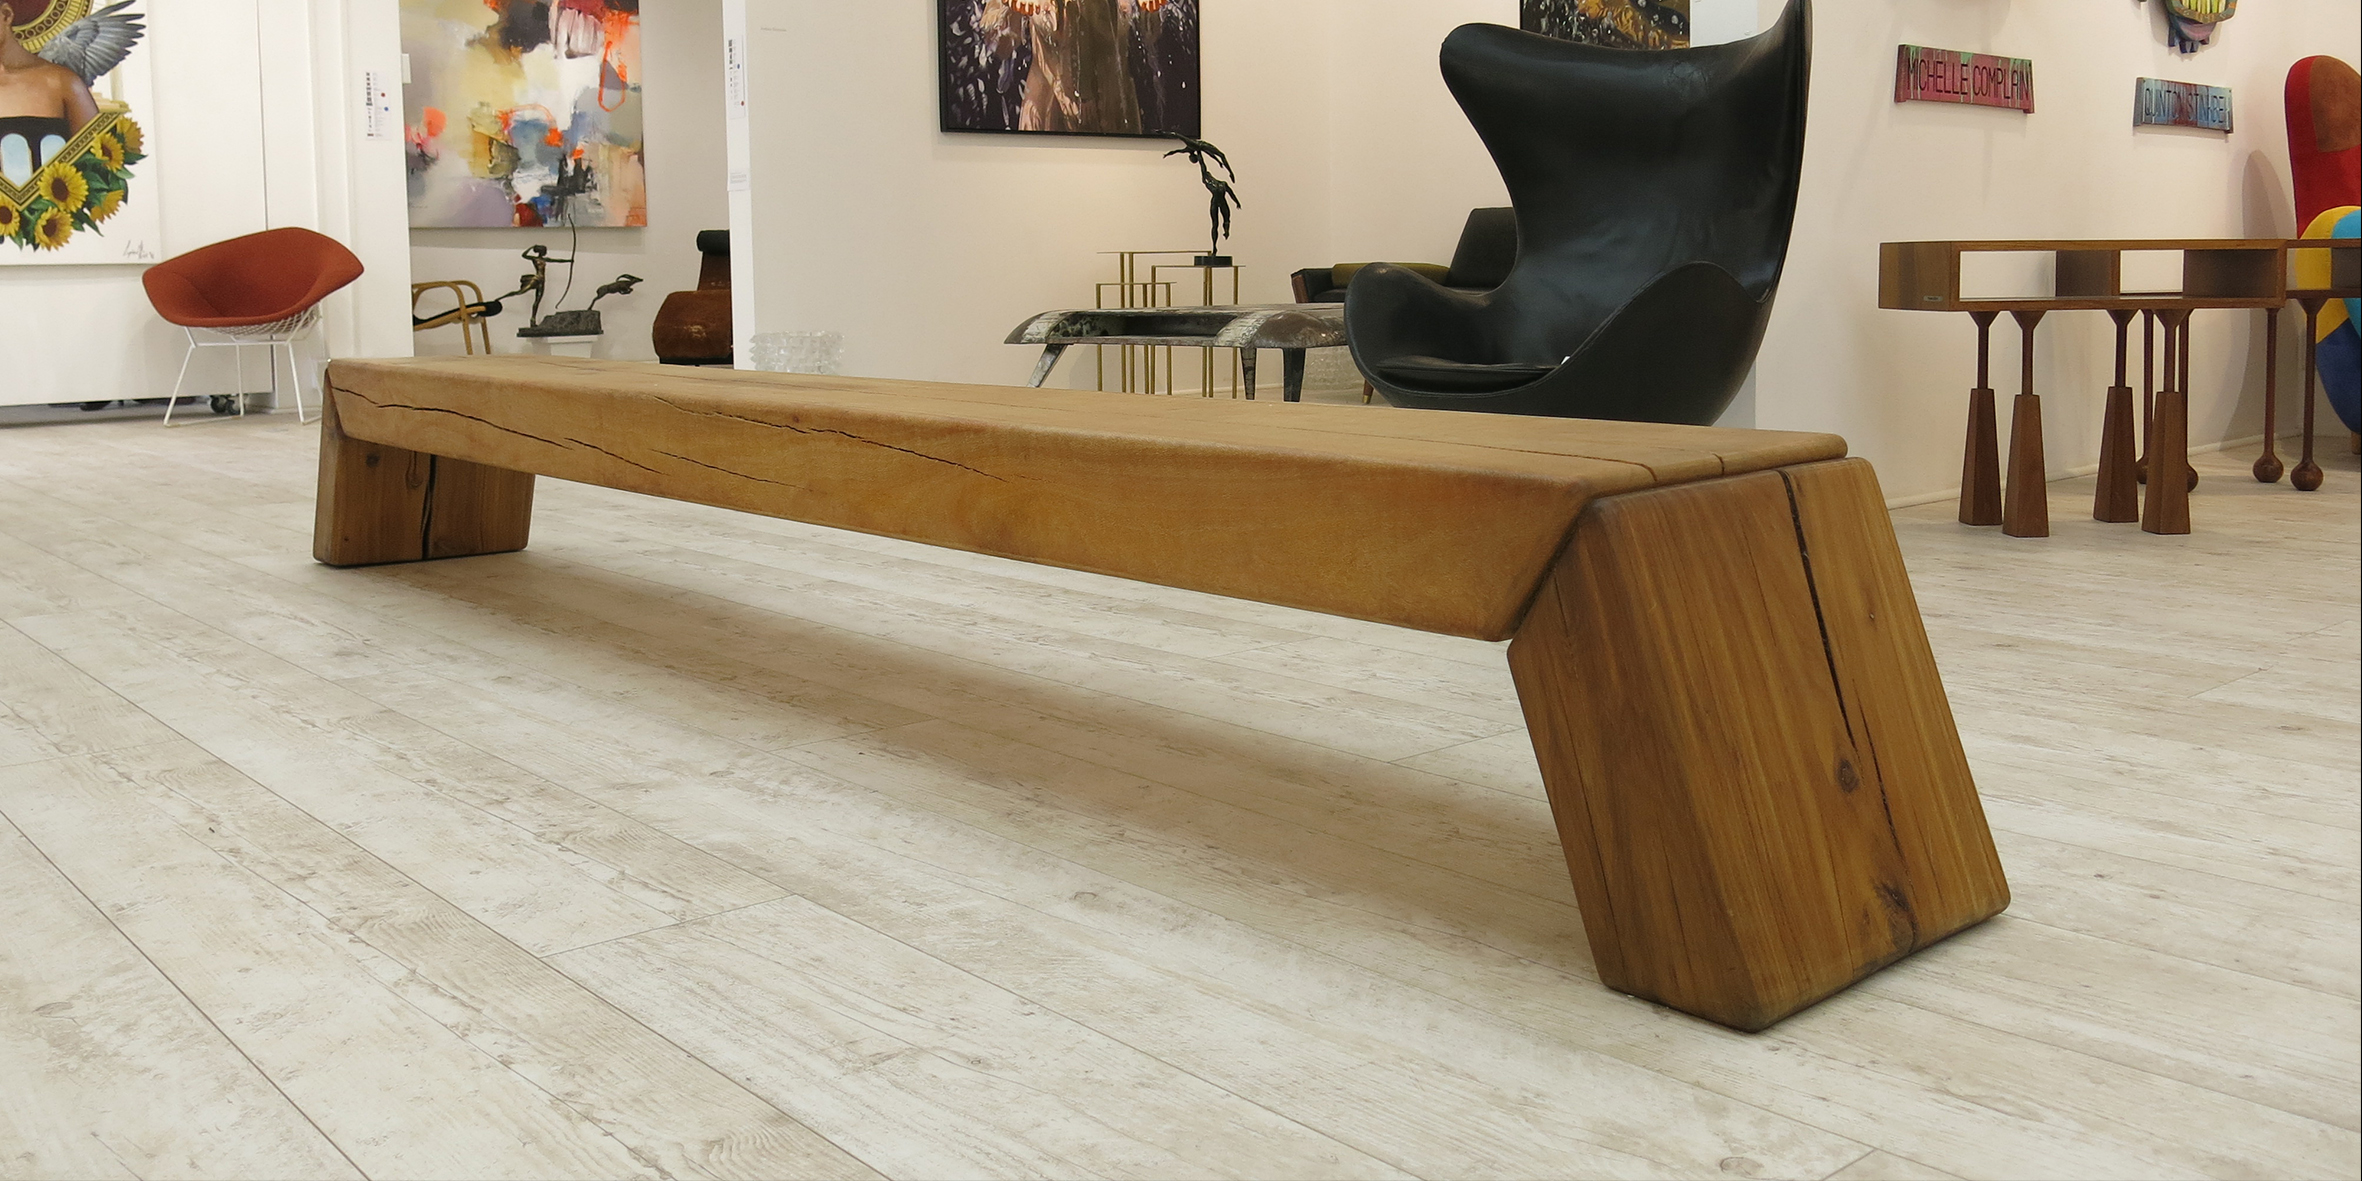 makere bench, 3000 l x 320 w x 430 h, silky oak beam with blackwood legs eclectica